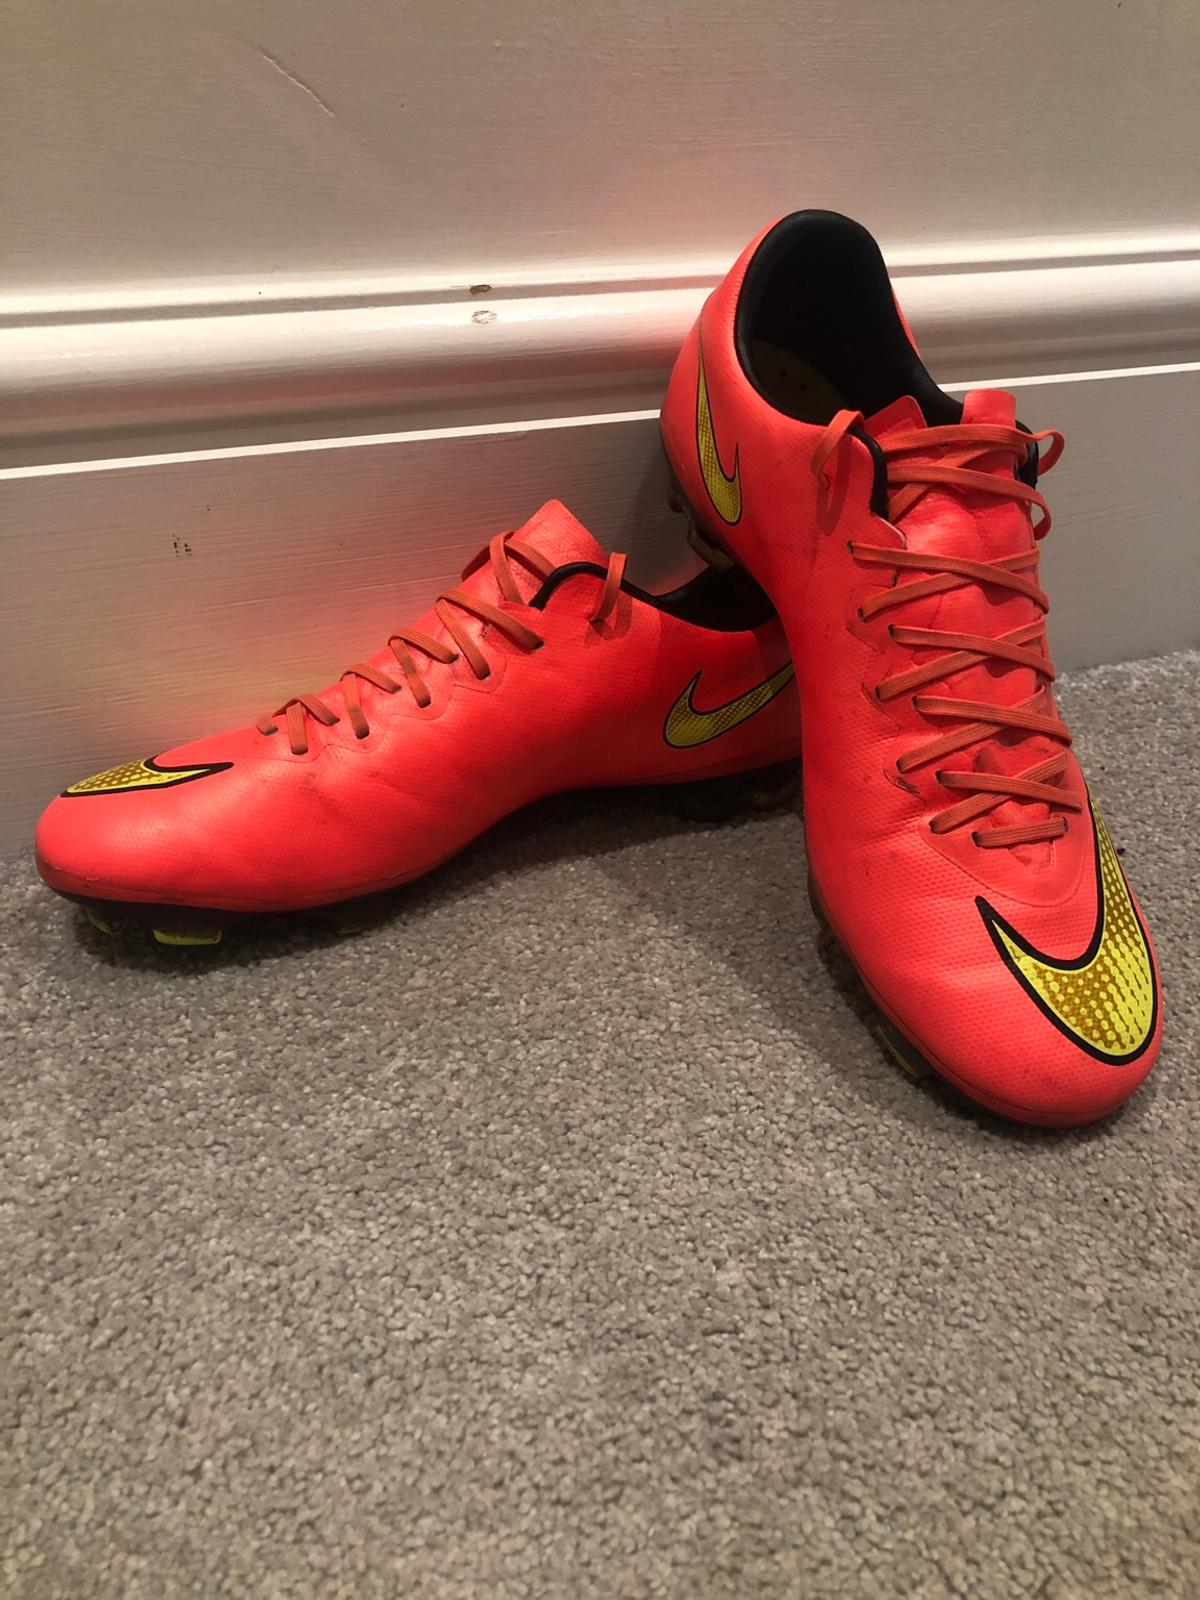 official photos 0ae60 73bd0 Nike mercurial football boots